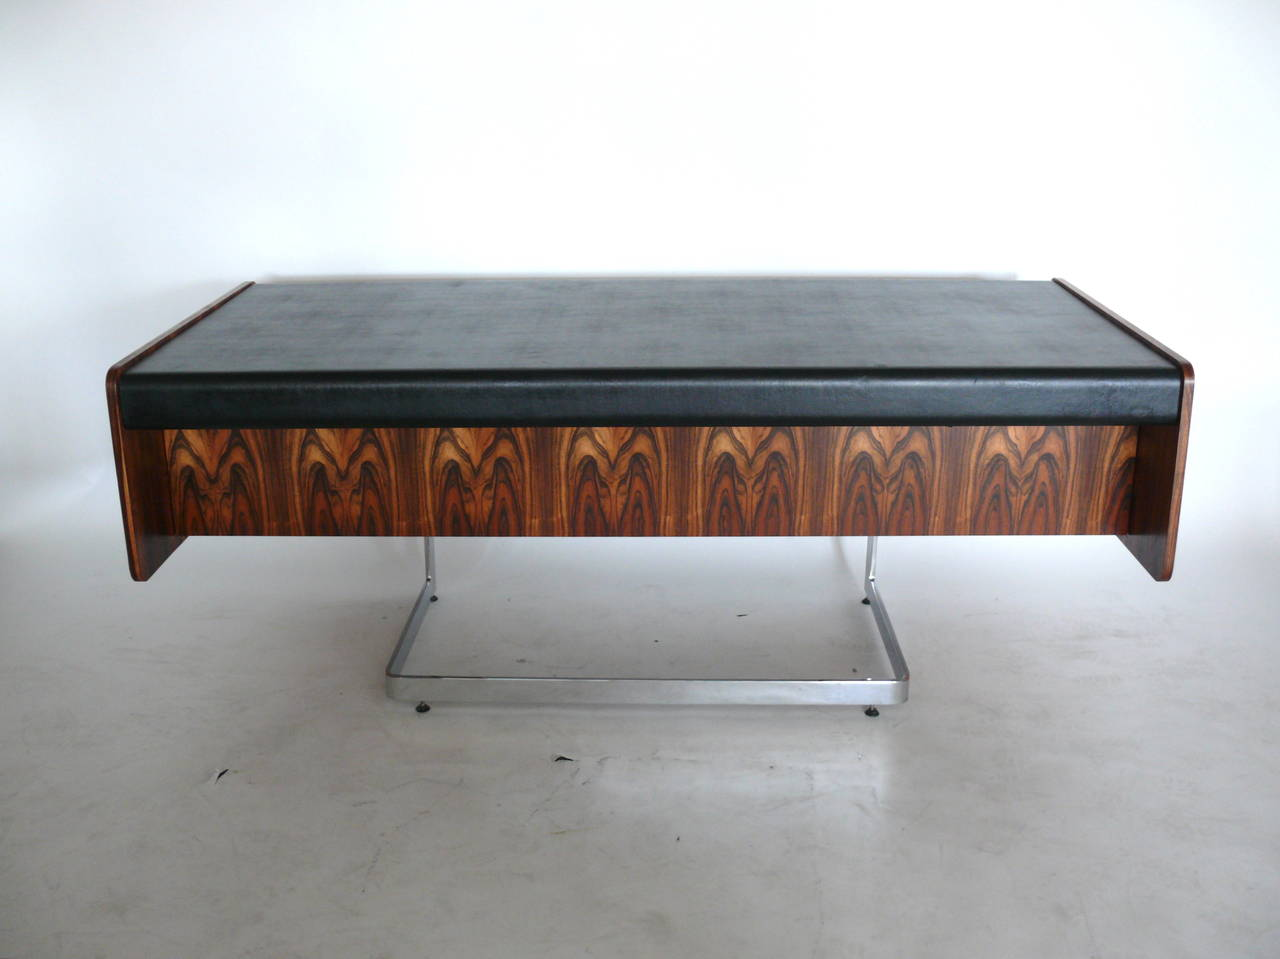 Exquisite Rosewood Desk By Ste Marie Lau Floats On Top Of Newly